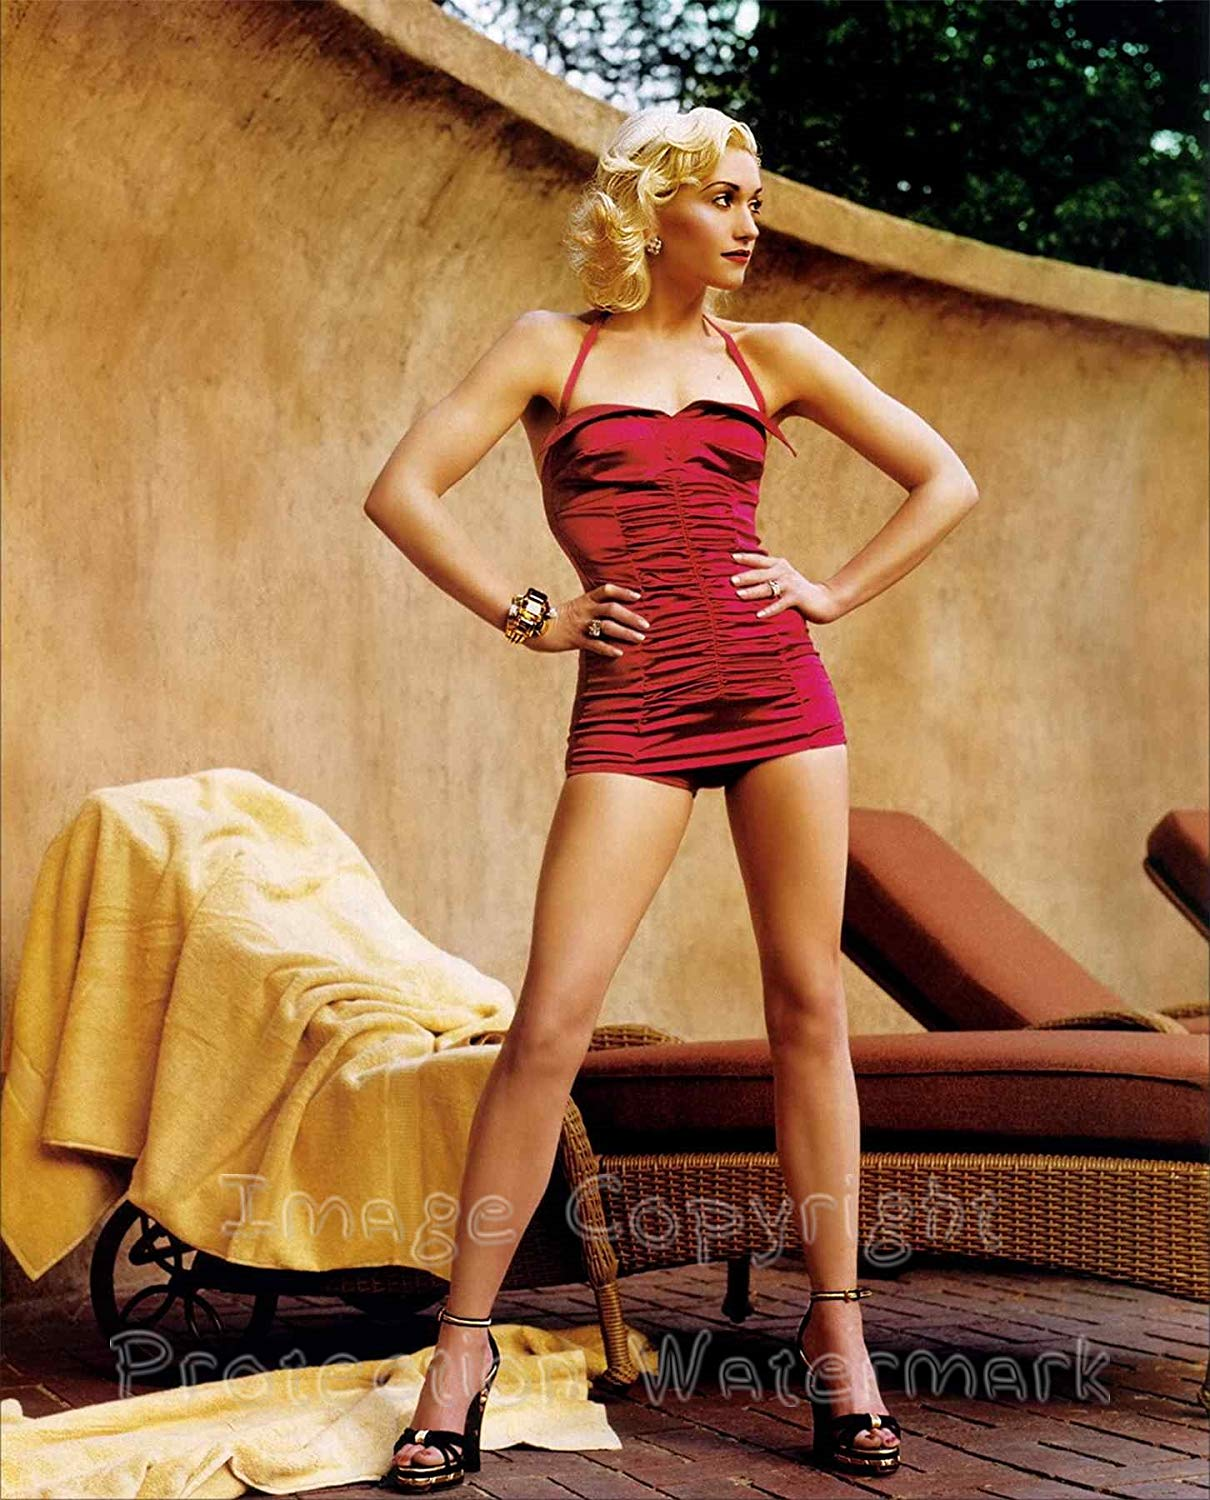 Gwen Stefani No Doubt Sexy Legs and Feet in Heels 8x10 Photo ...